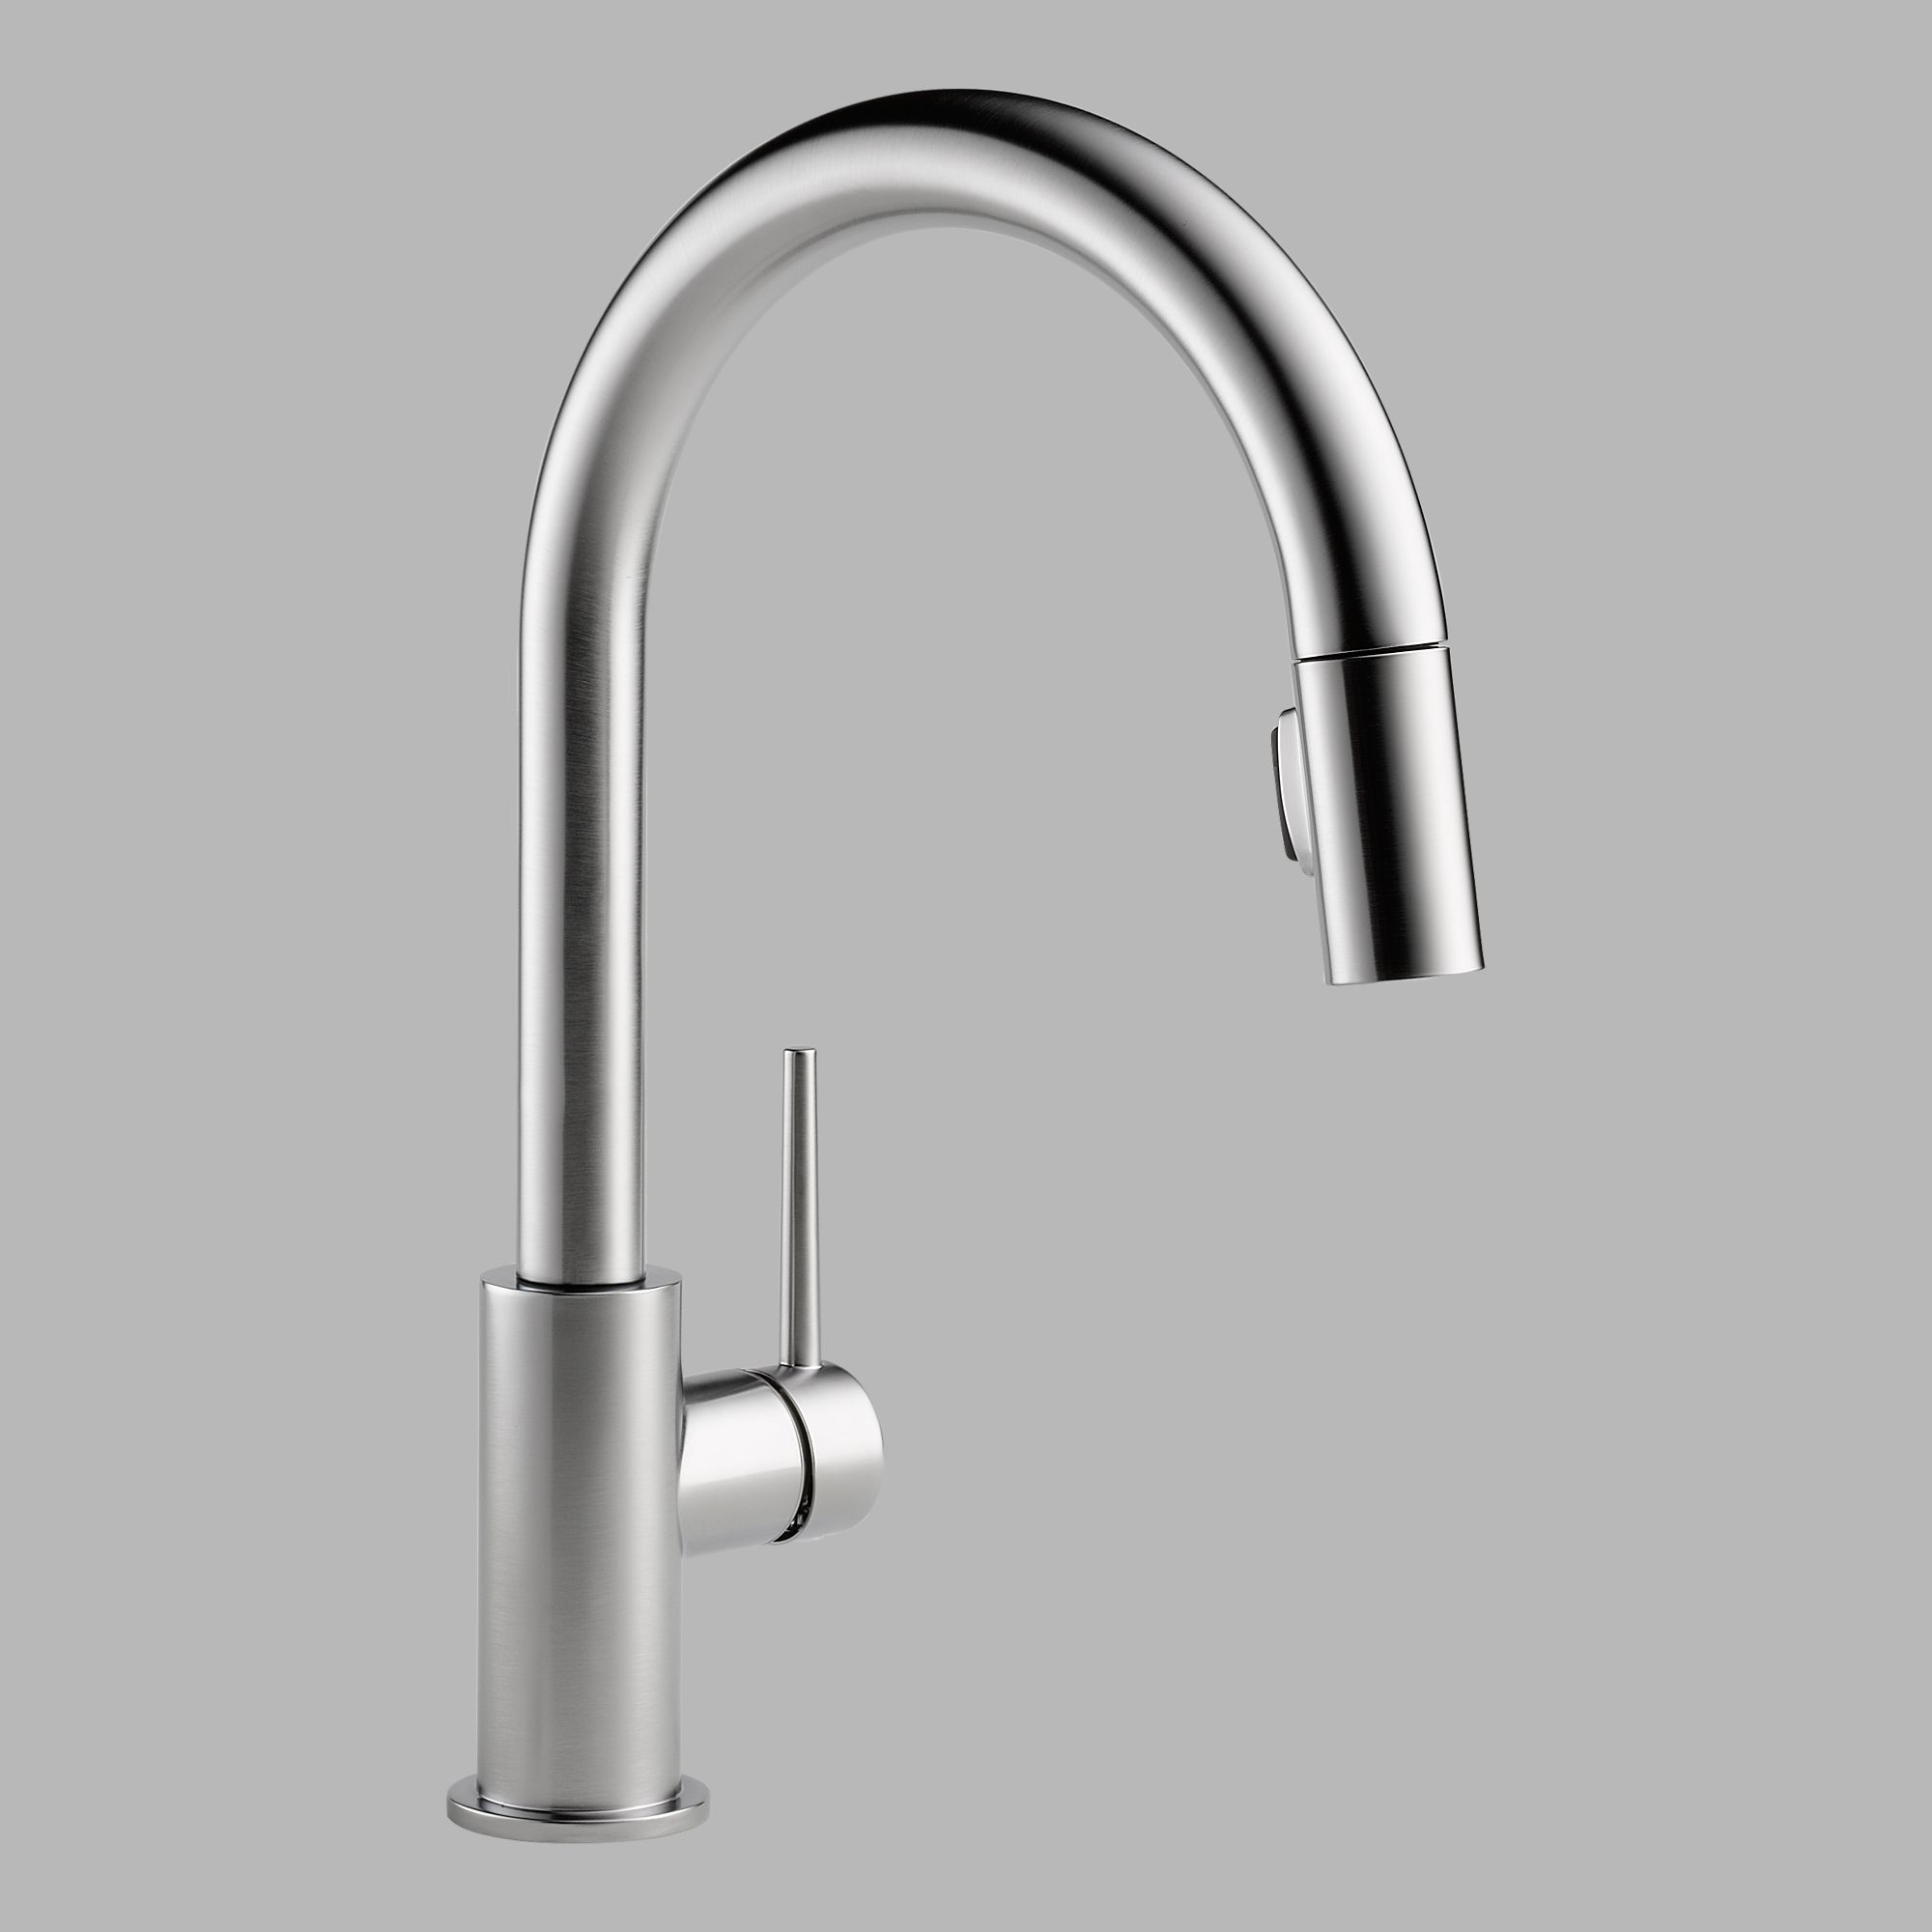 Kitchen Faucet Keeps Getting Loose: Delta 9159-AR-DST Single Handle Pull Down Kitchen Faucet